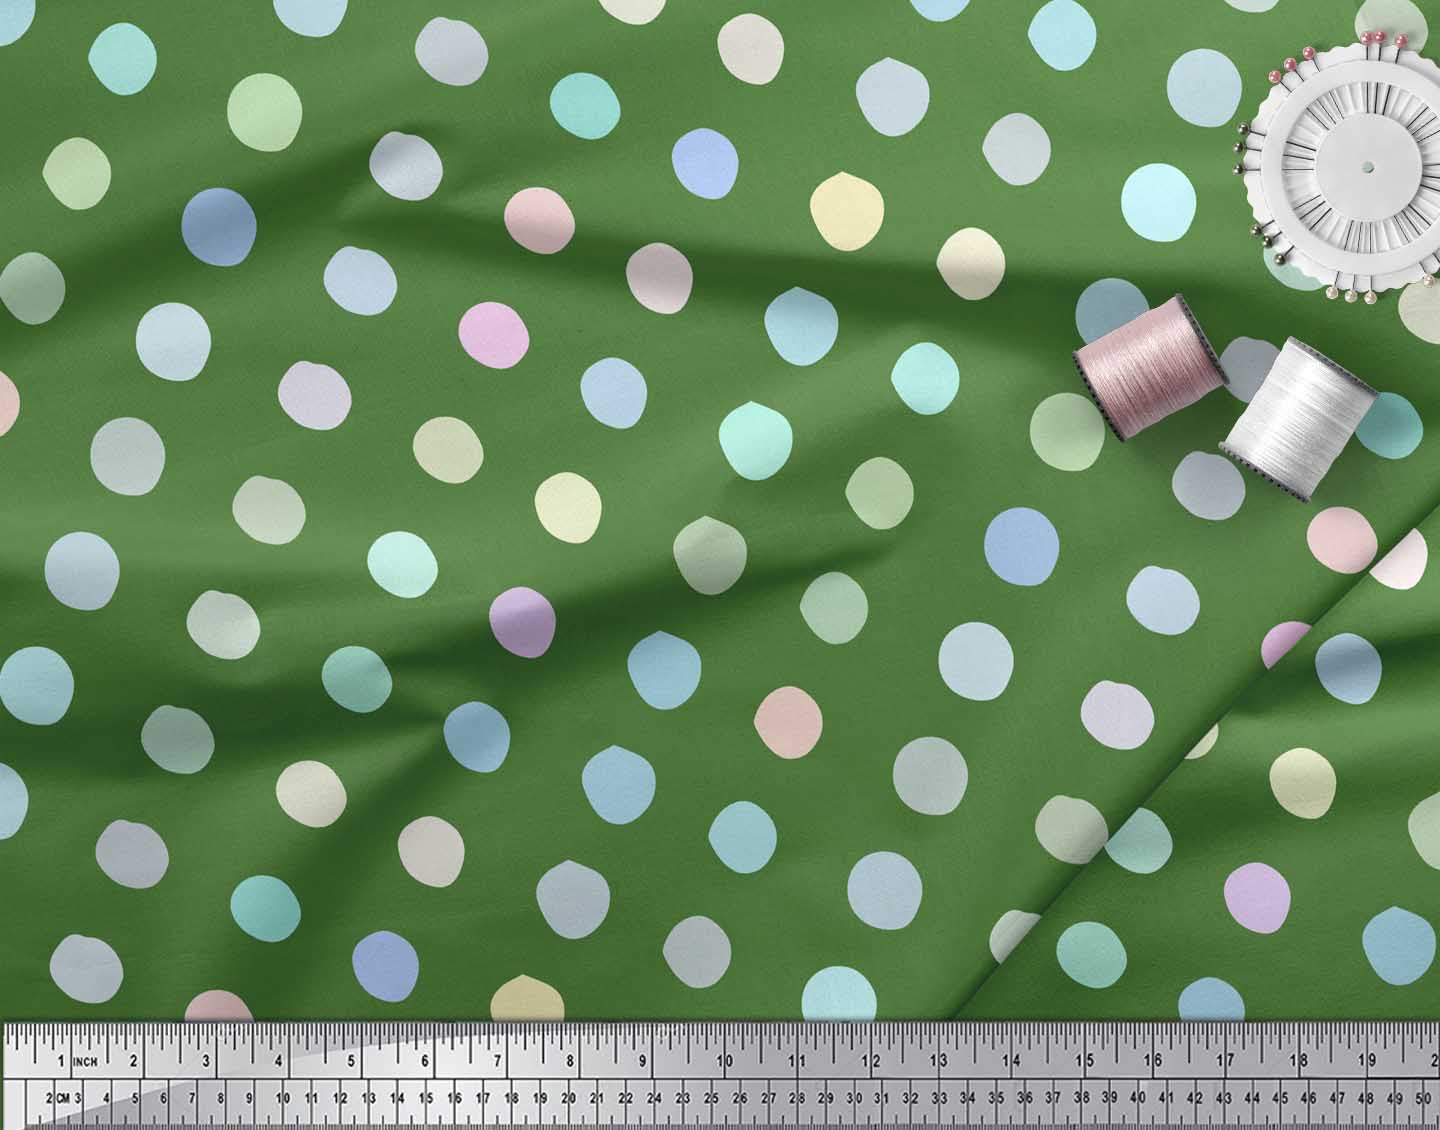 Soimoi-Green-Cotton-Poplin-Fabric-Circle-Geometric-Decor-Fabric-Lol thumbnail 3